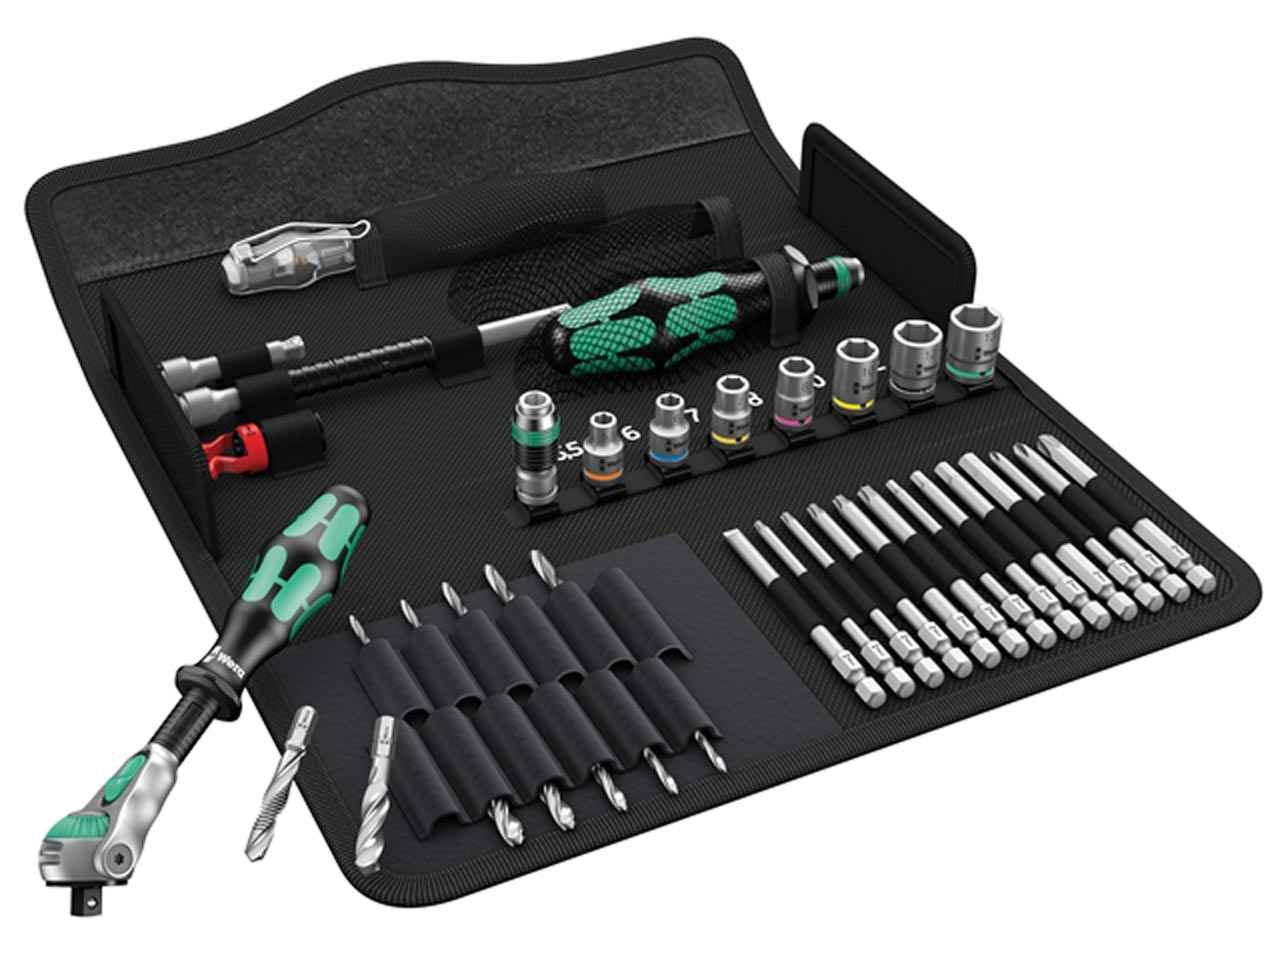 wera 05135928001 kraftform kompact h1 metal tool set 39 piece. Black Bedroom Furniture Sets. Home Design Ideas